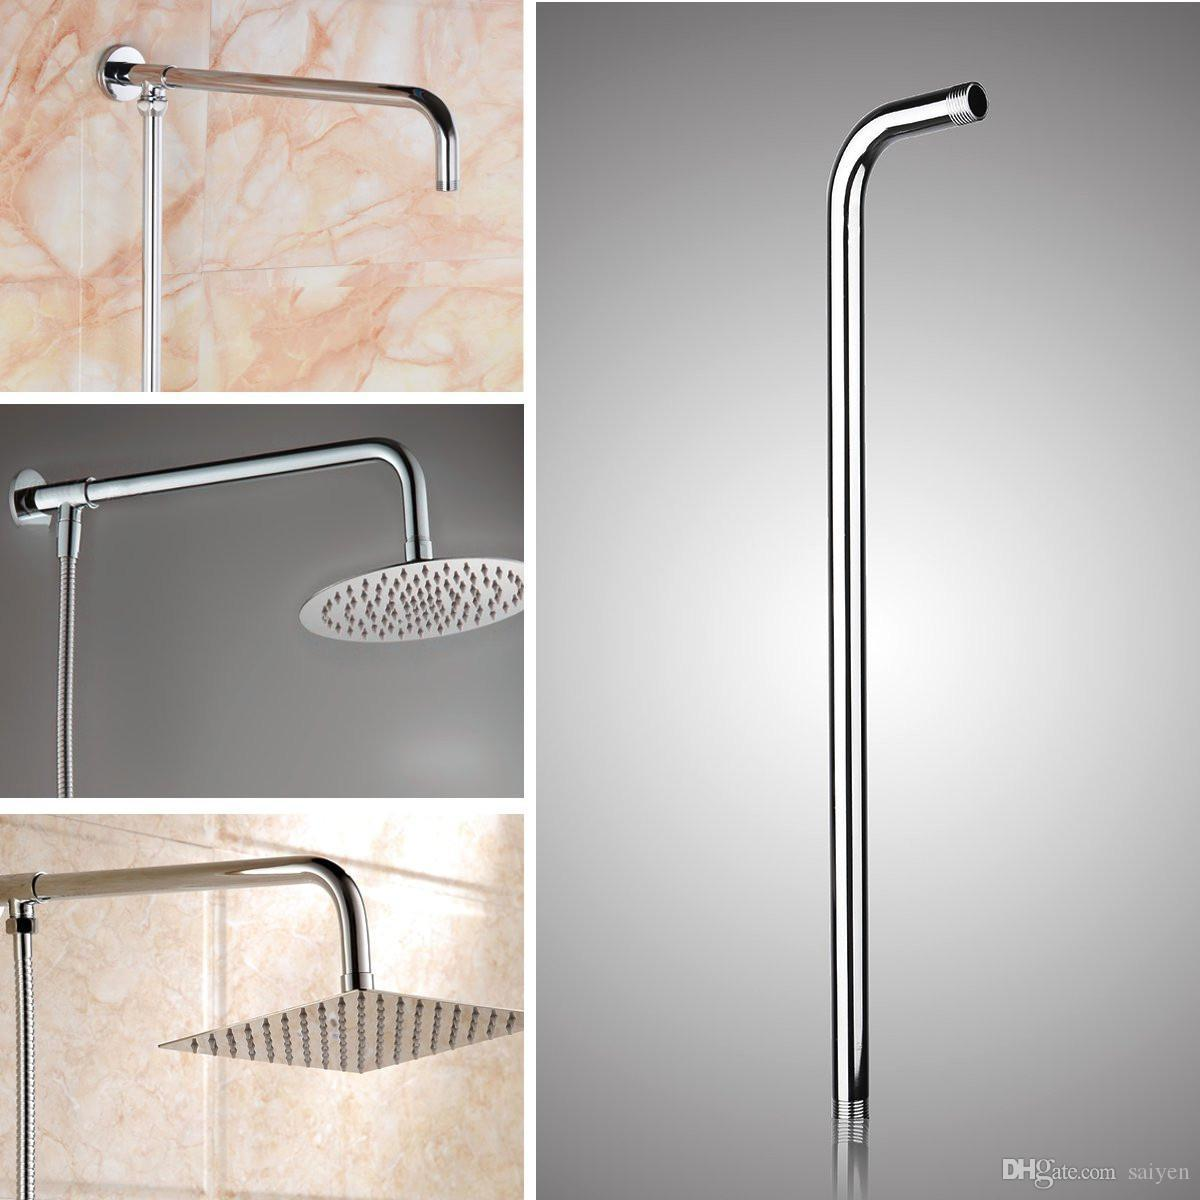 24inch Wall Mounted Stainless Steel Shower Extension Arm For Rainfall Shower Head Arms Bathroom Tools Accessories